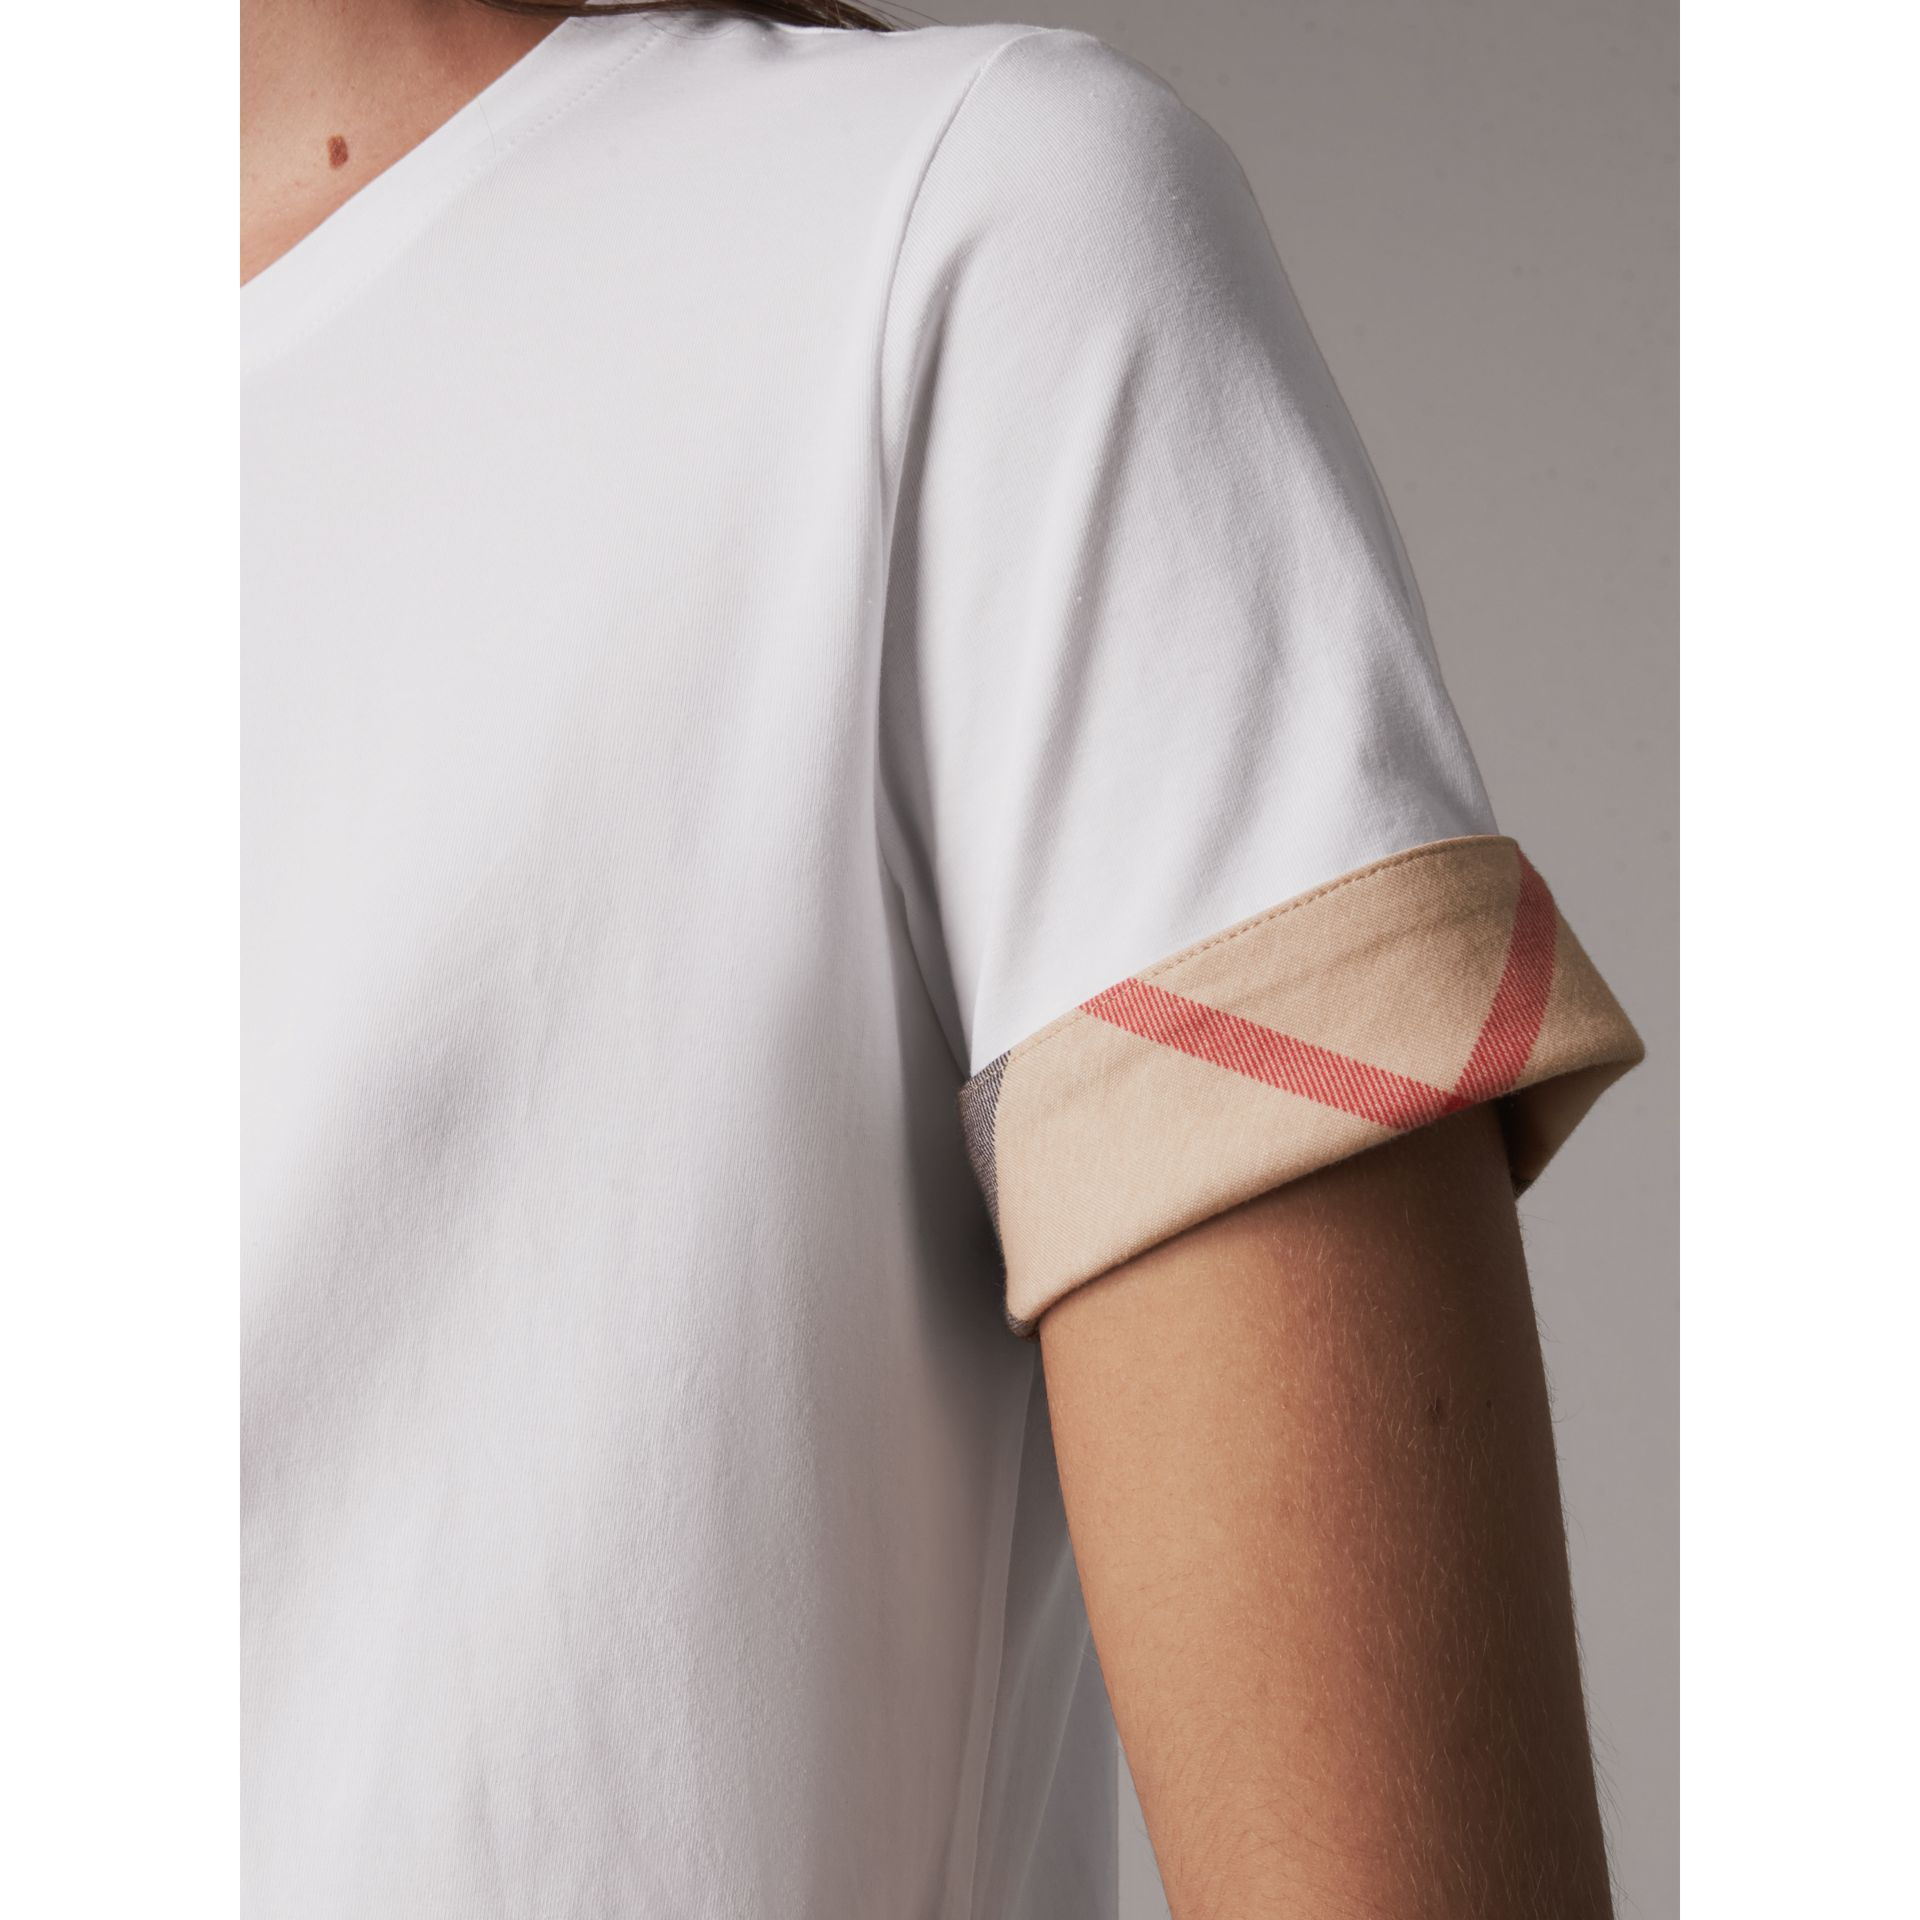 Check Cuff Stretch Cotton T-Shirt in White - Women | Burberry Australia - gallery image 2